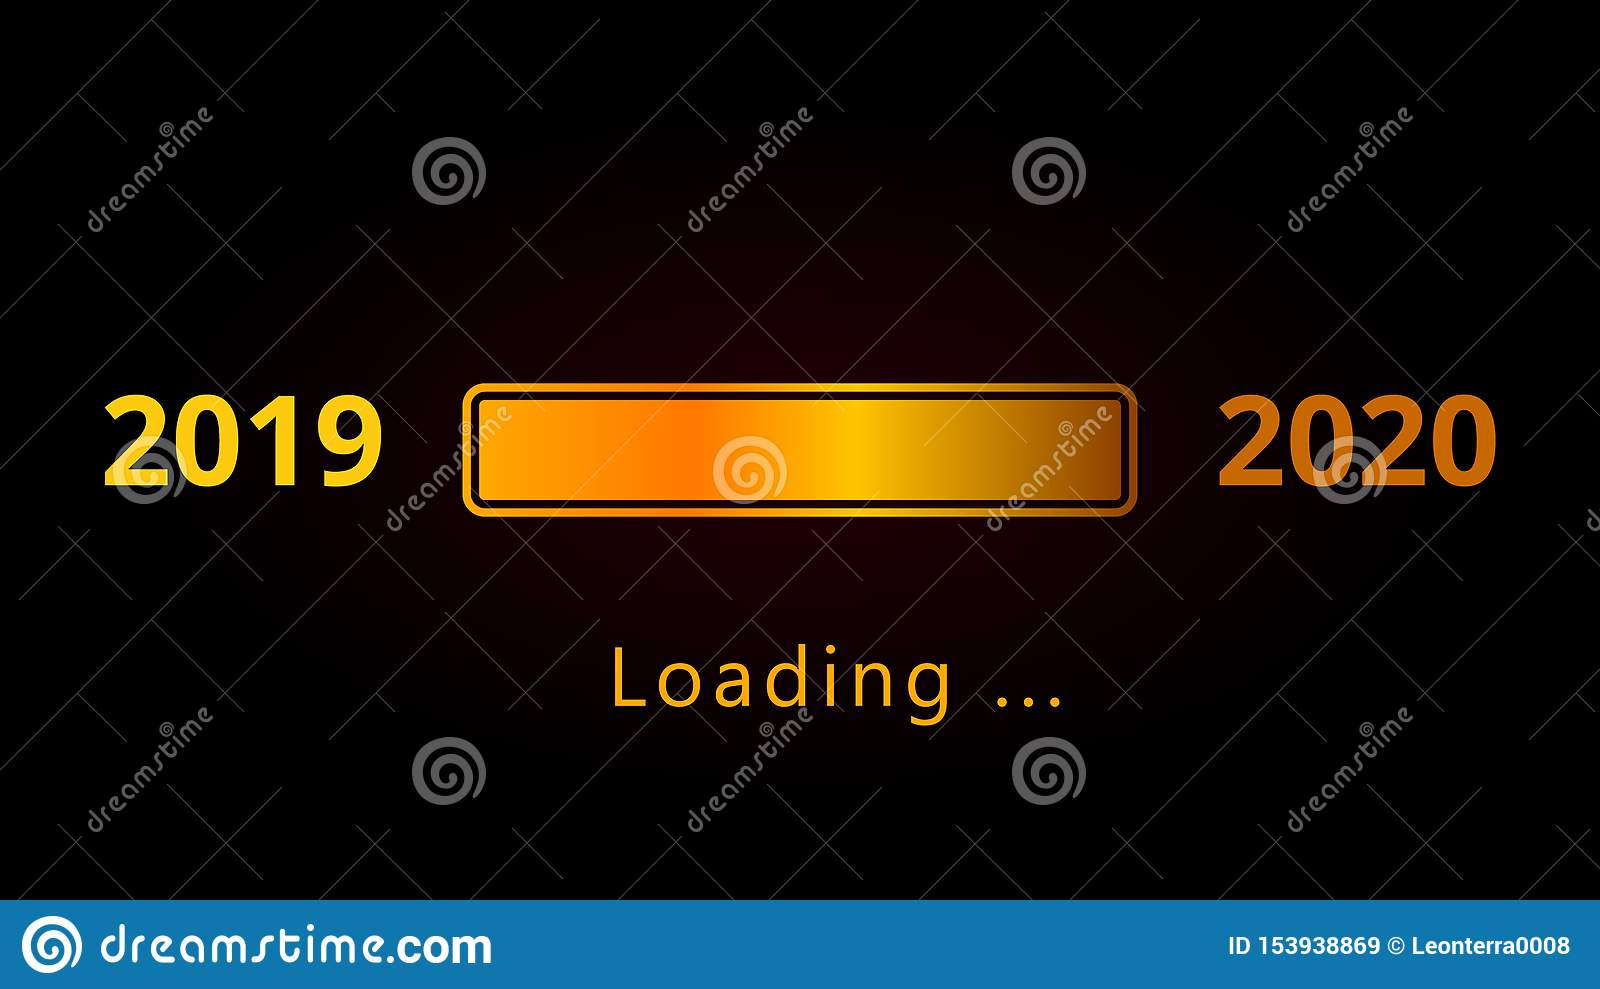 Happy New Year 2020 Numbers With Shiny Golden Loading Bar And Text Isolated On Black Background Stock Illustration Illustration Of Card Festive 153938869